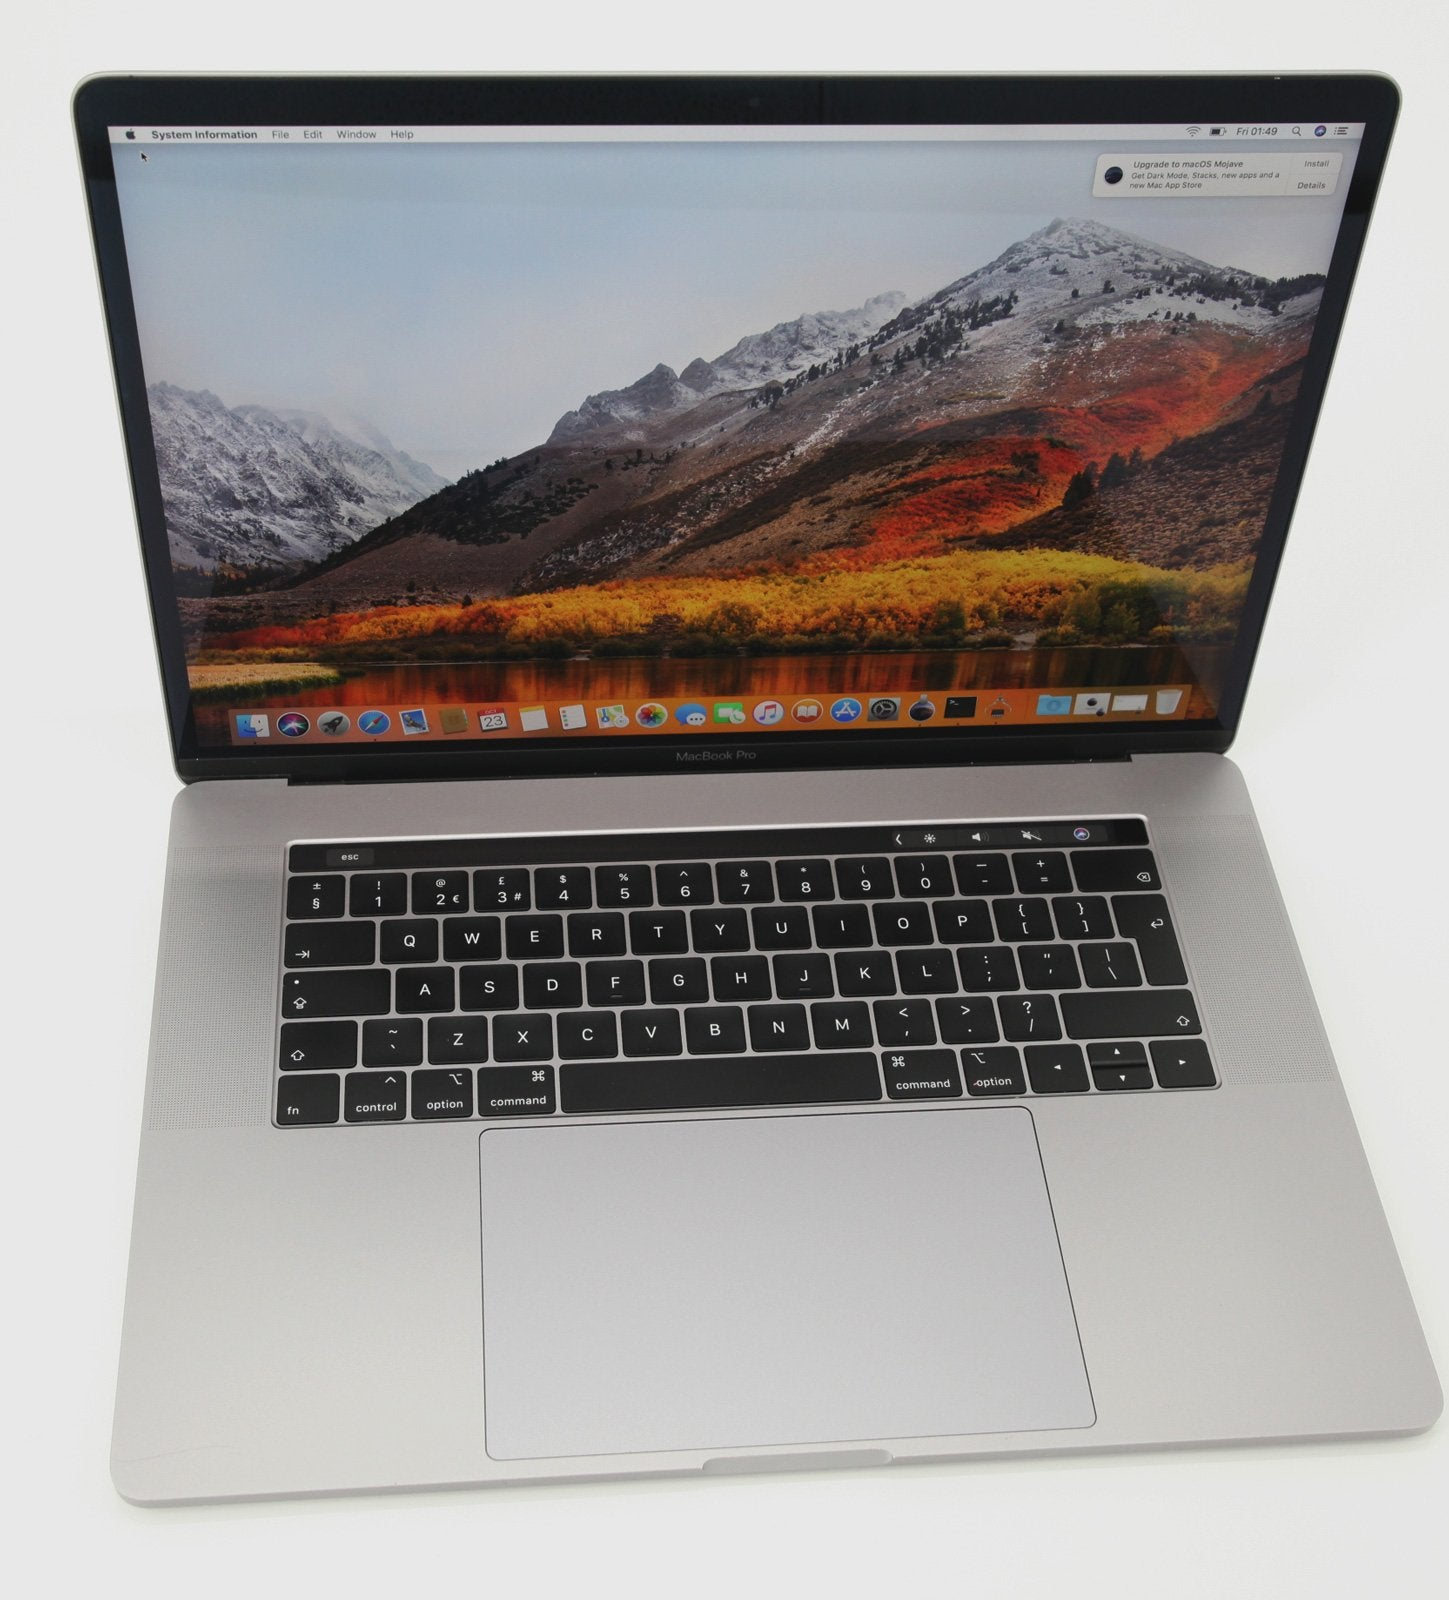 Apple MacBook Pro 15-Inch 2018 Core i9 2.9Ghz 6-Core, 16GB RAM, 512GB SSD - CruiseTech